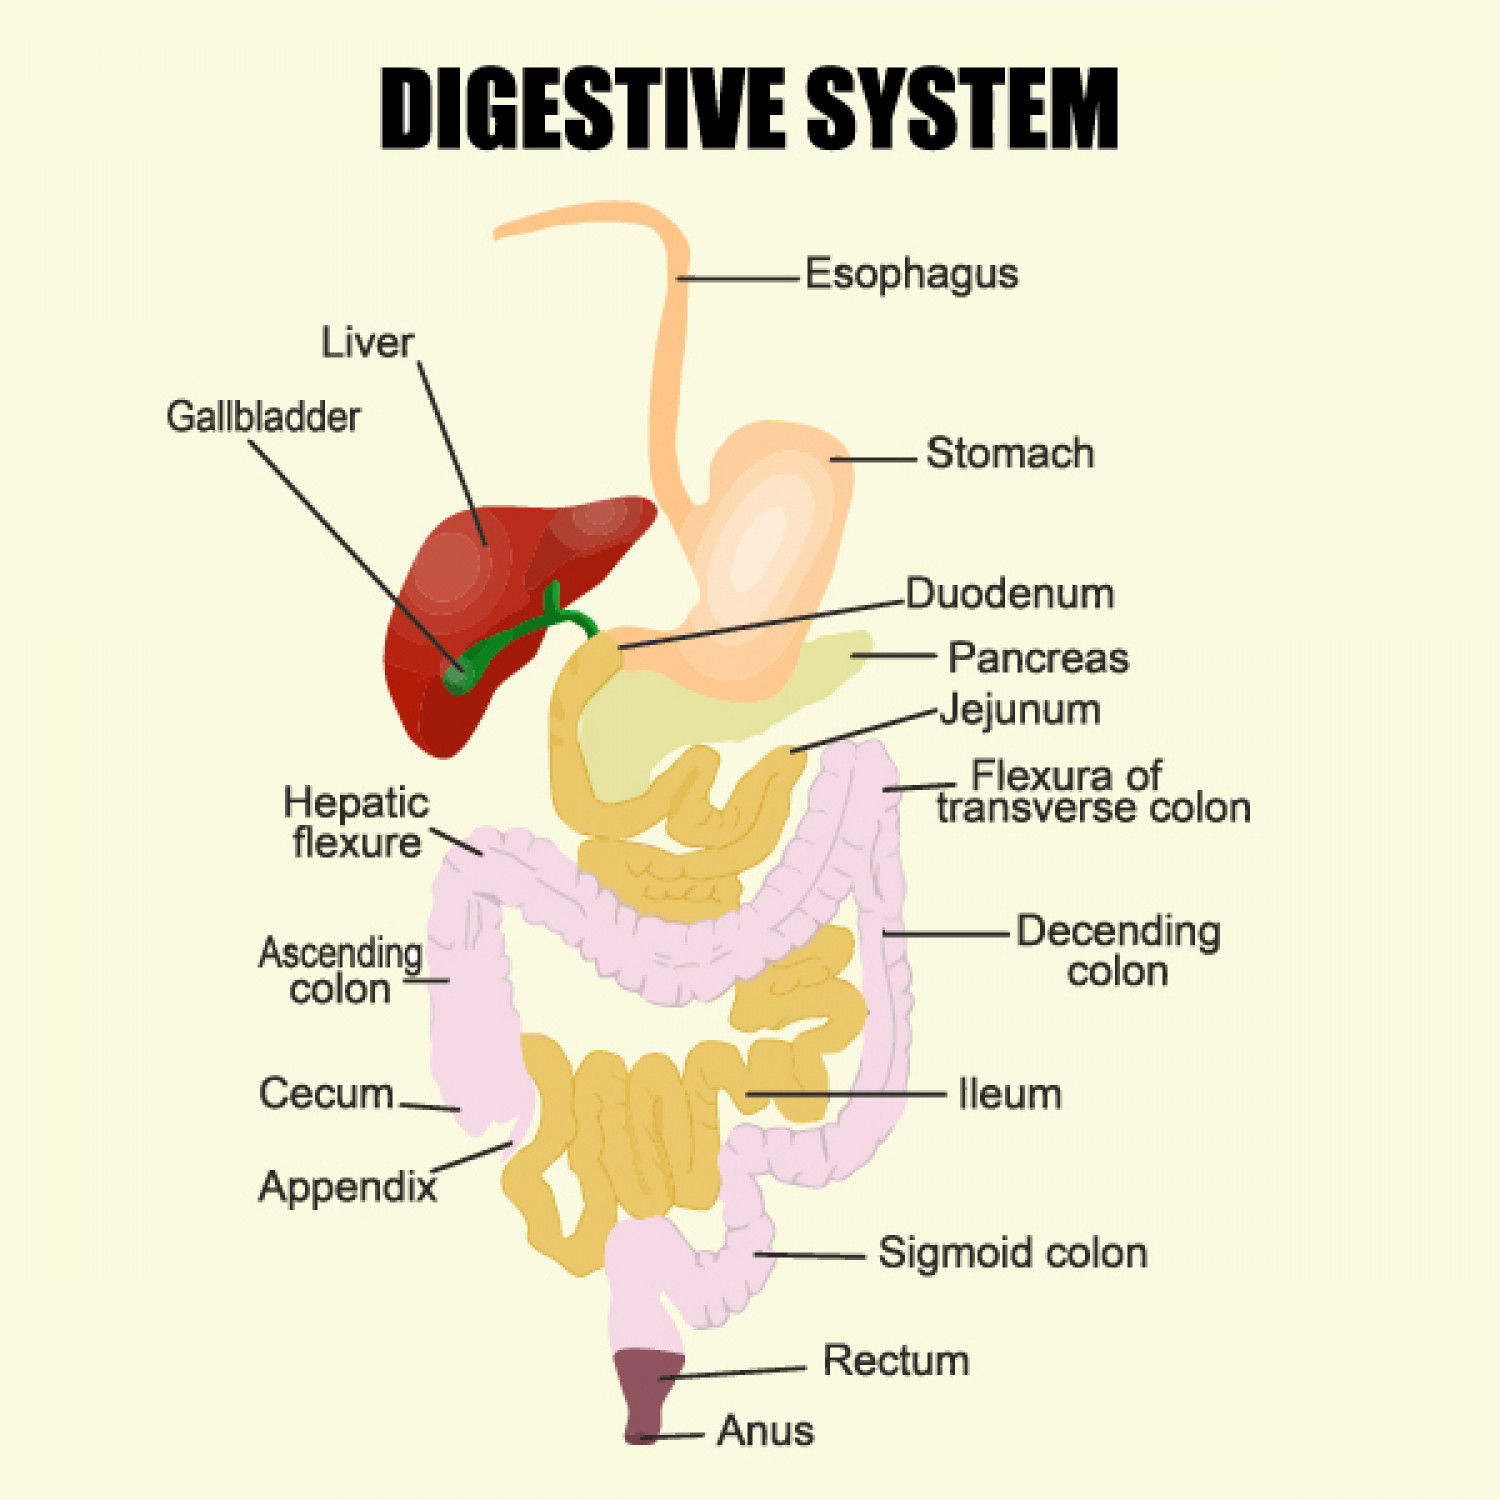 The Digestive System Visual